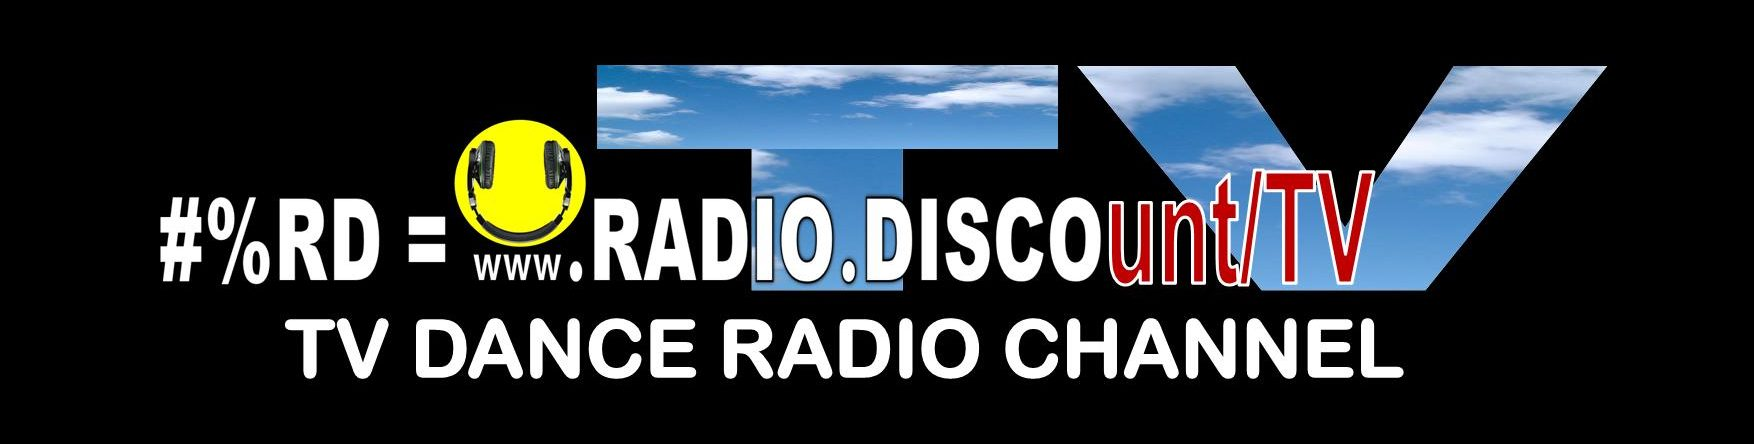 #% RADIO.DISCOunt/TV